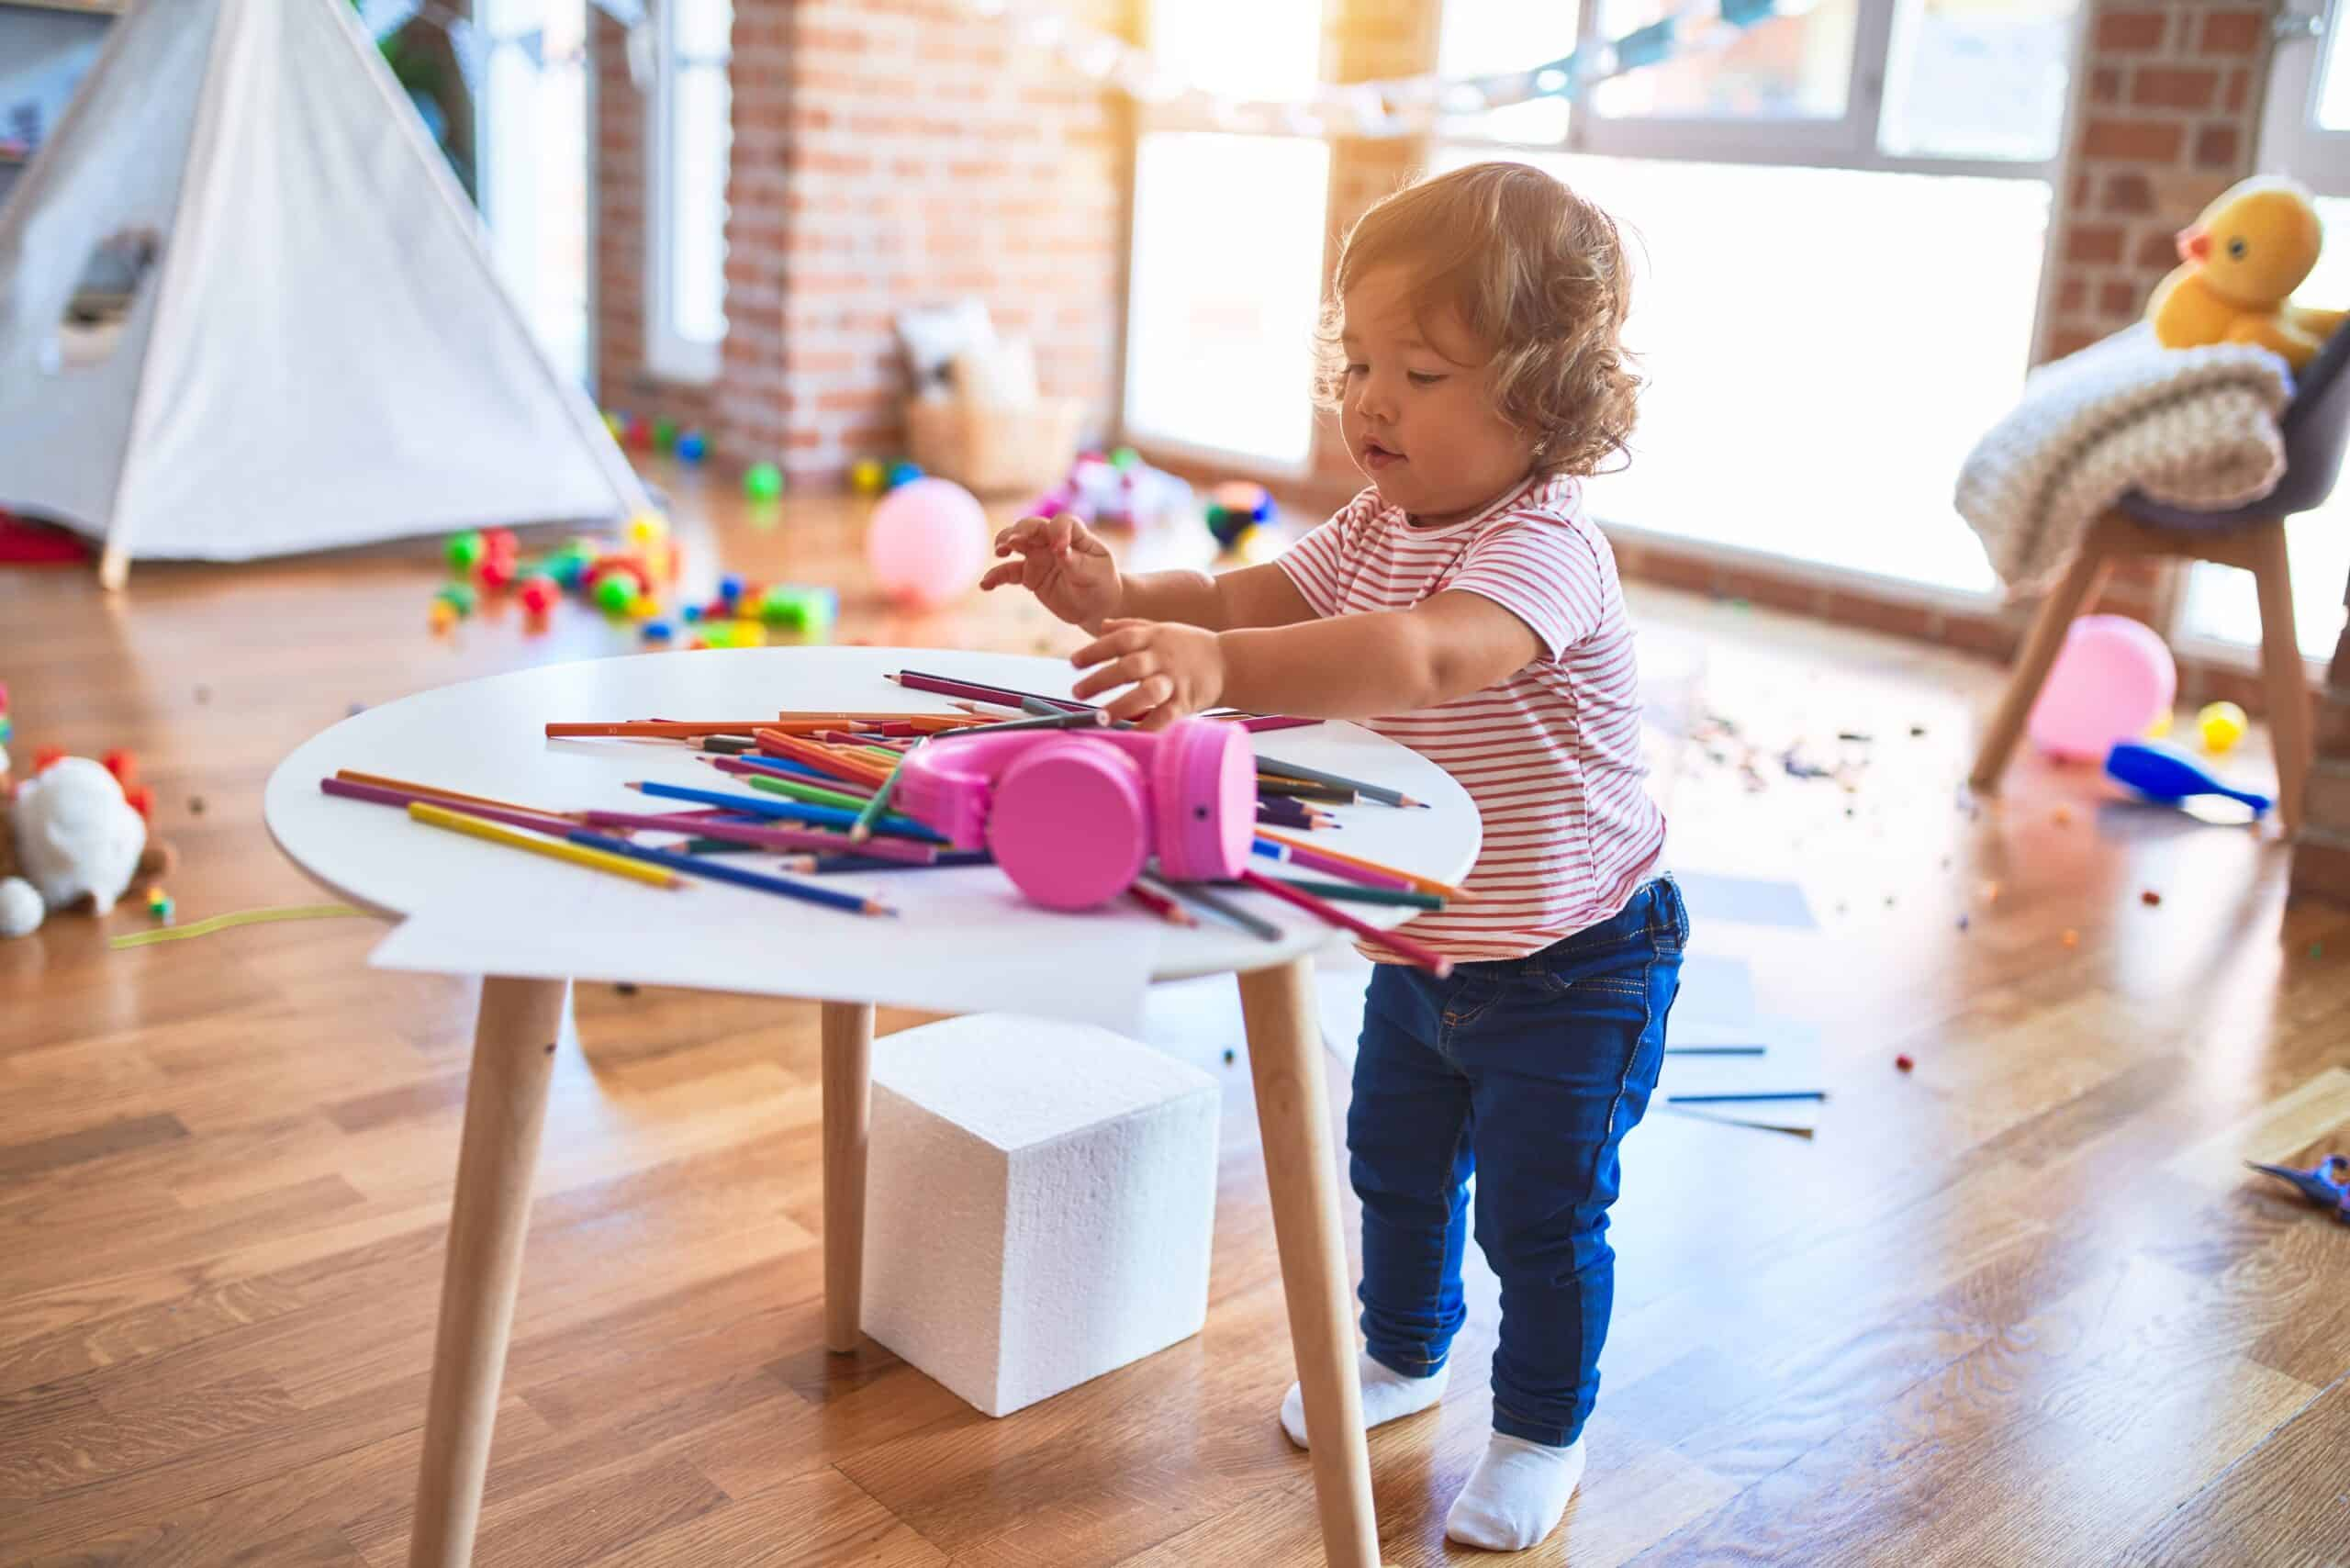 Image of a child playing with colored pencils showing play leads to discovery of the world.